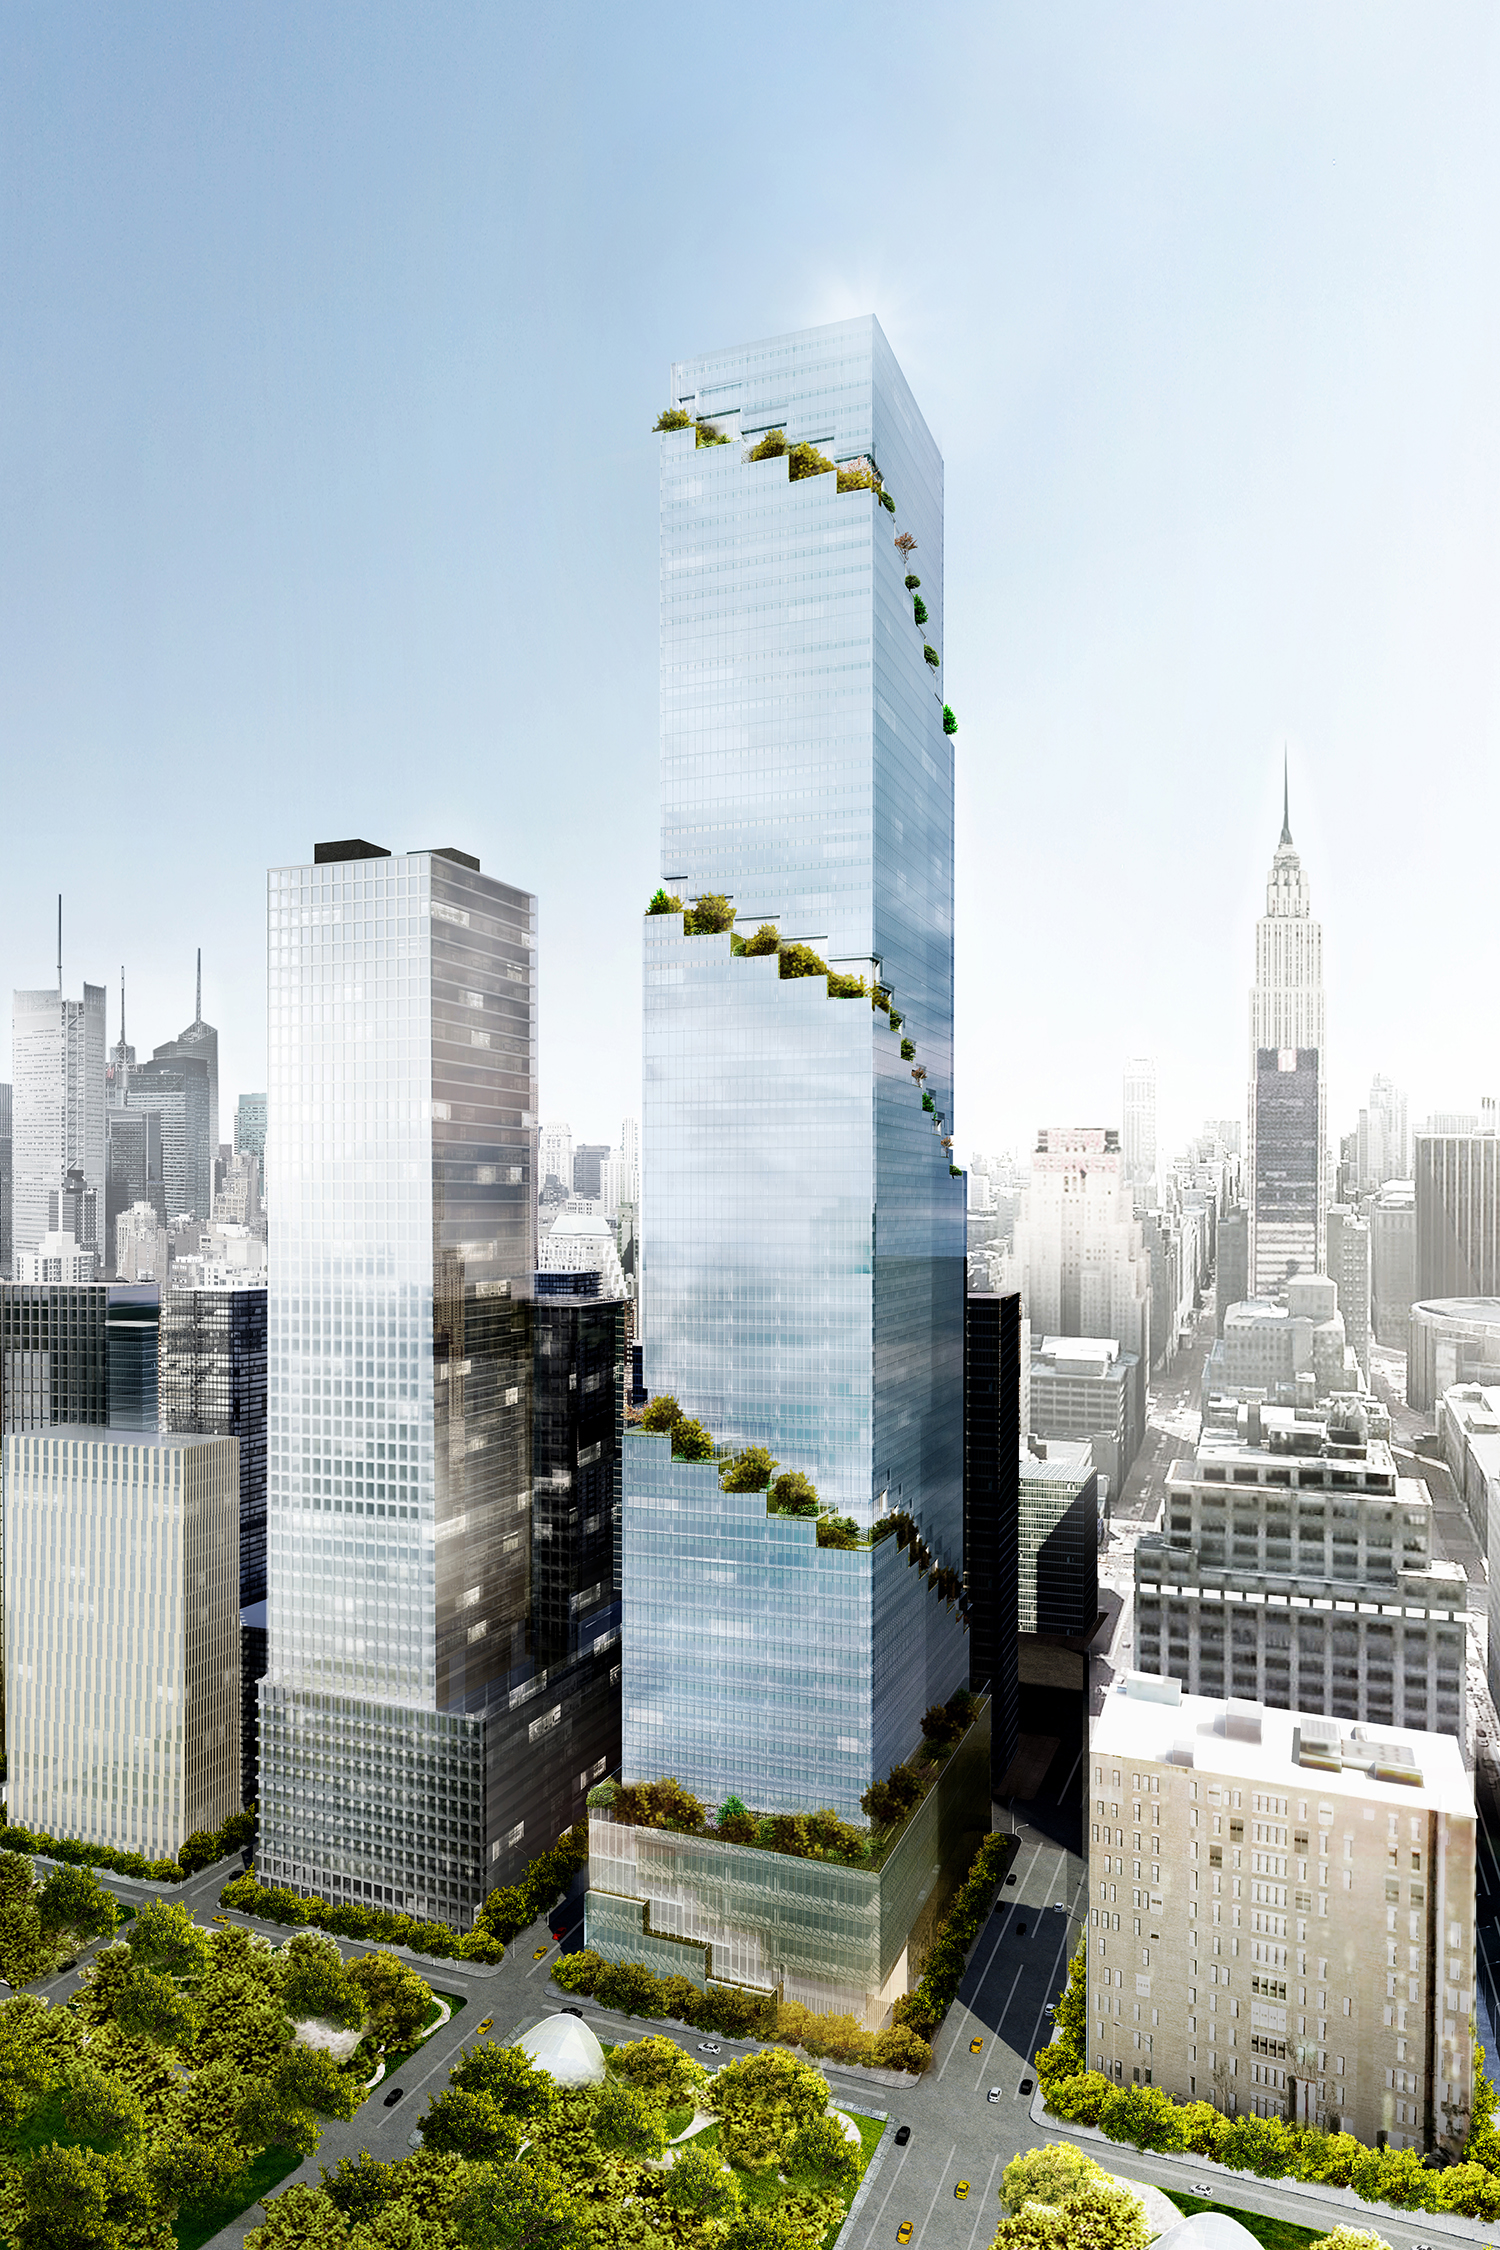 Rendering of 66 Hudson Boulevard. Credit: BIG/Tishman Speyer.